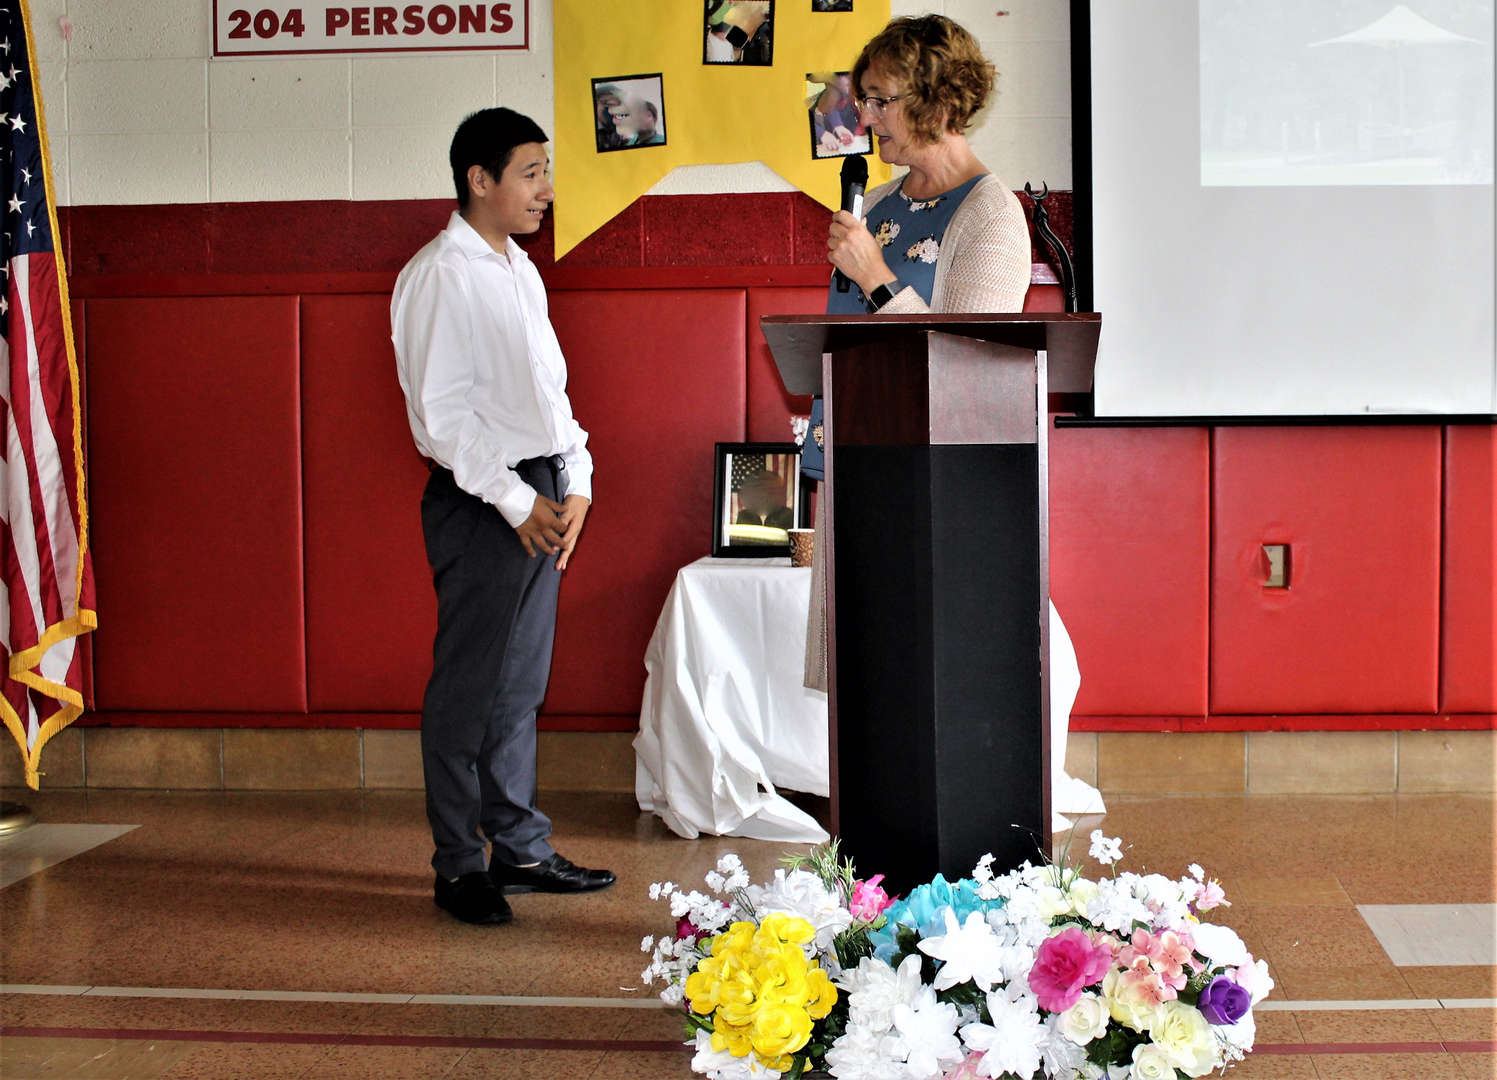 A teacher gives a moving-up certificate to a student.